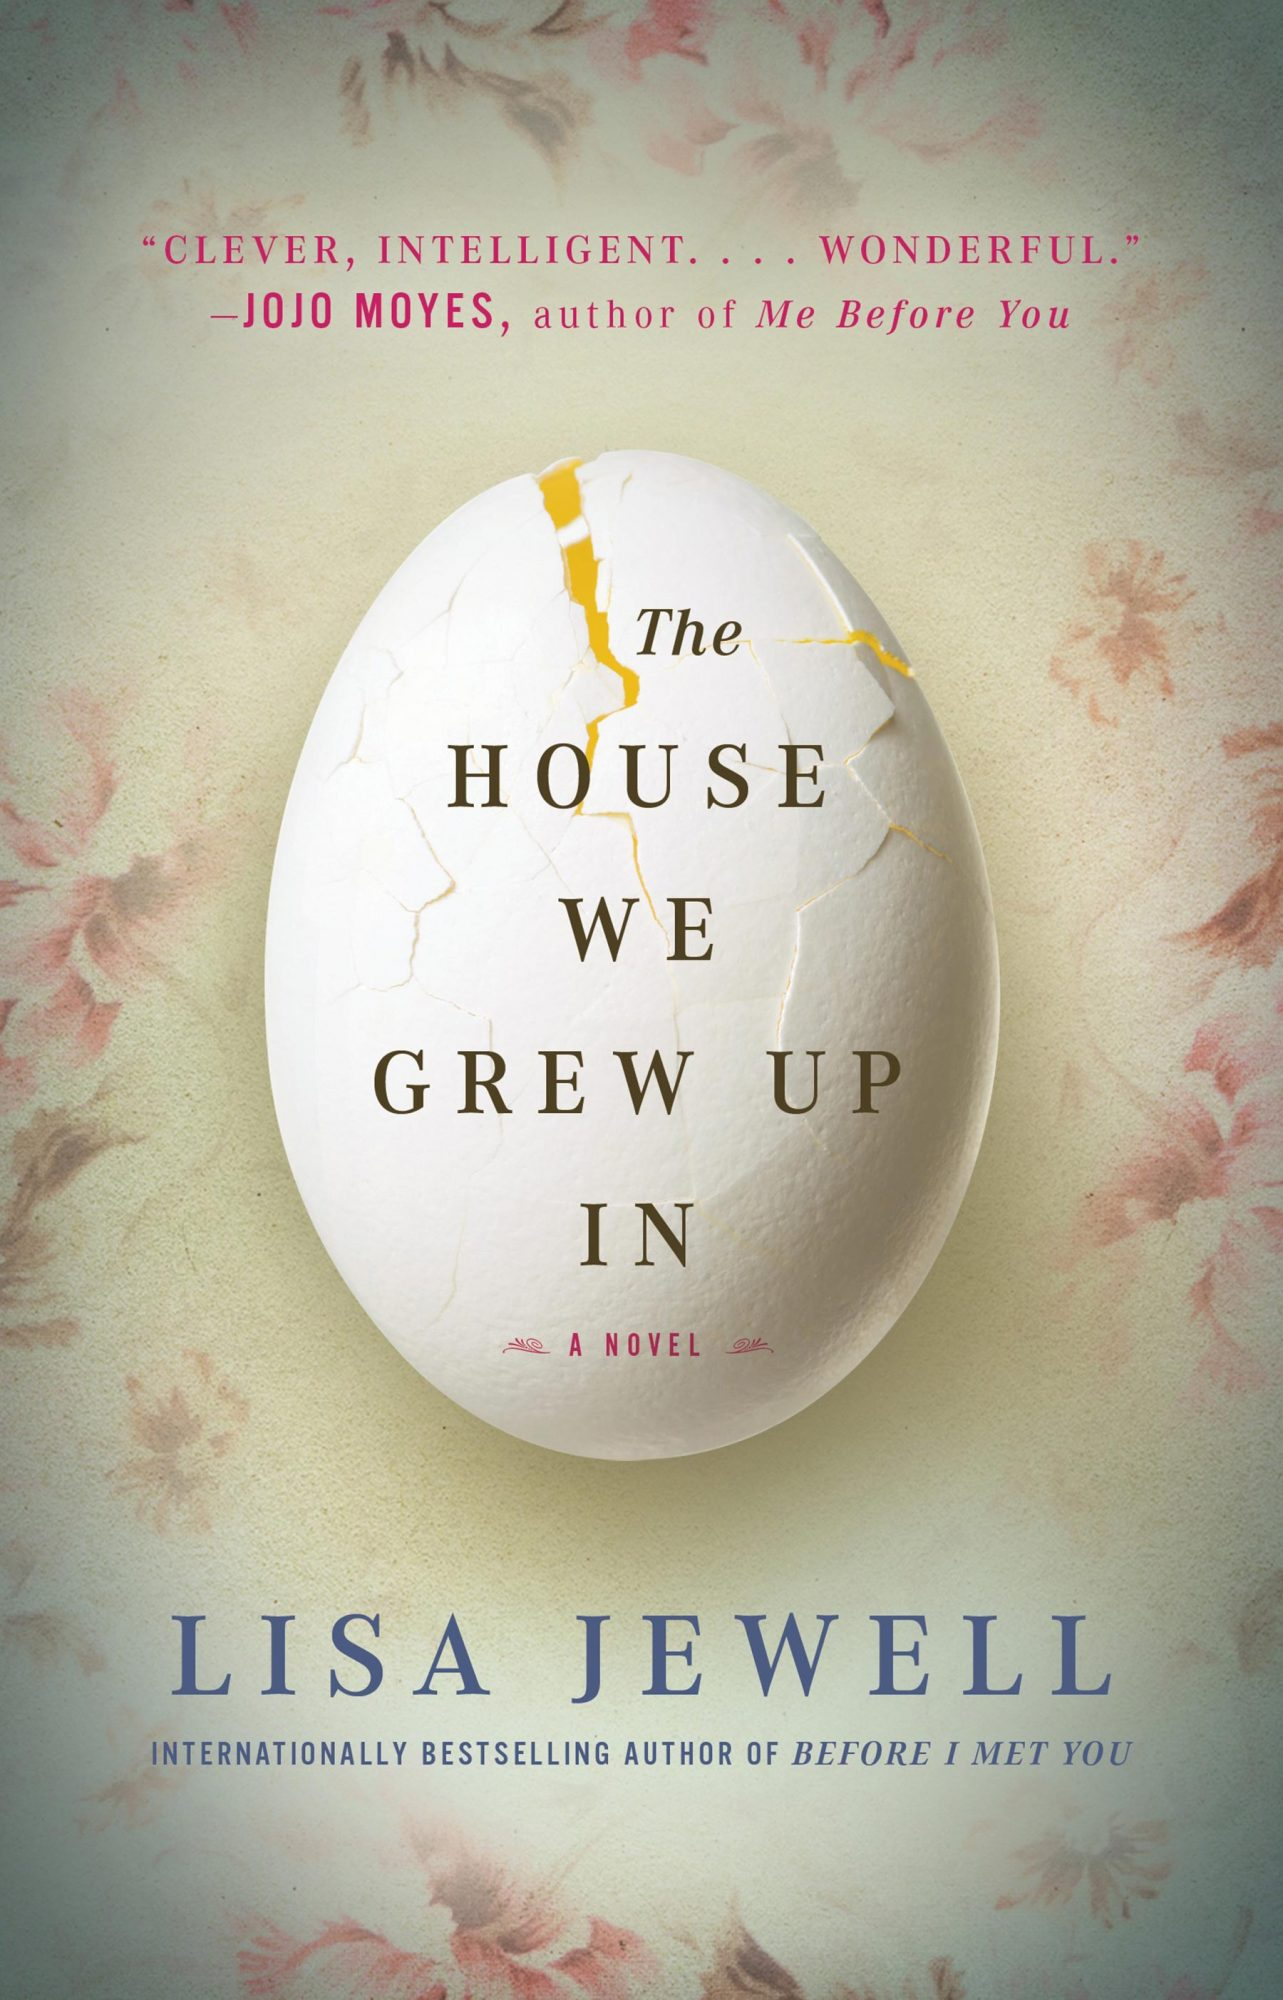 The House We Grew Up In (8/12/14)by Lisa Jewell